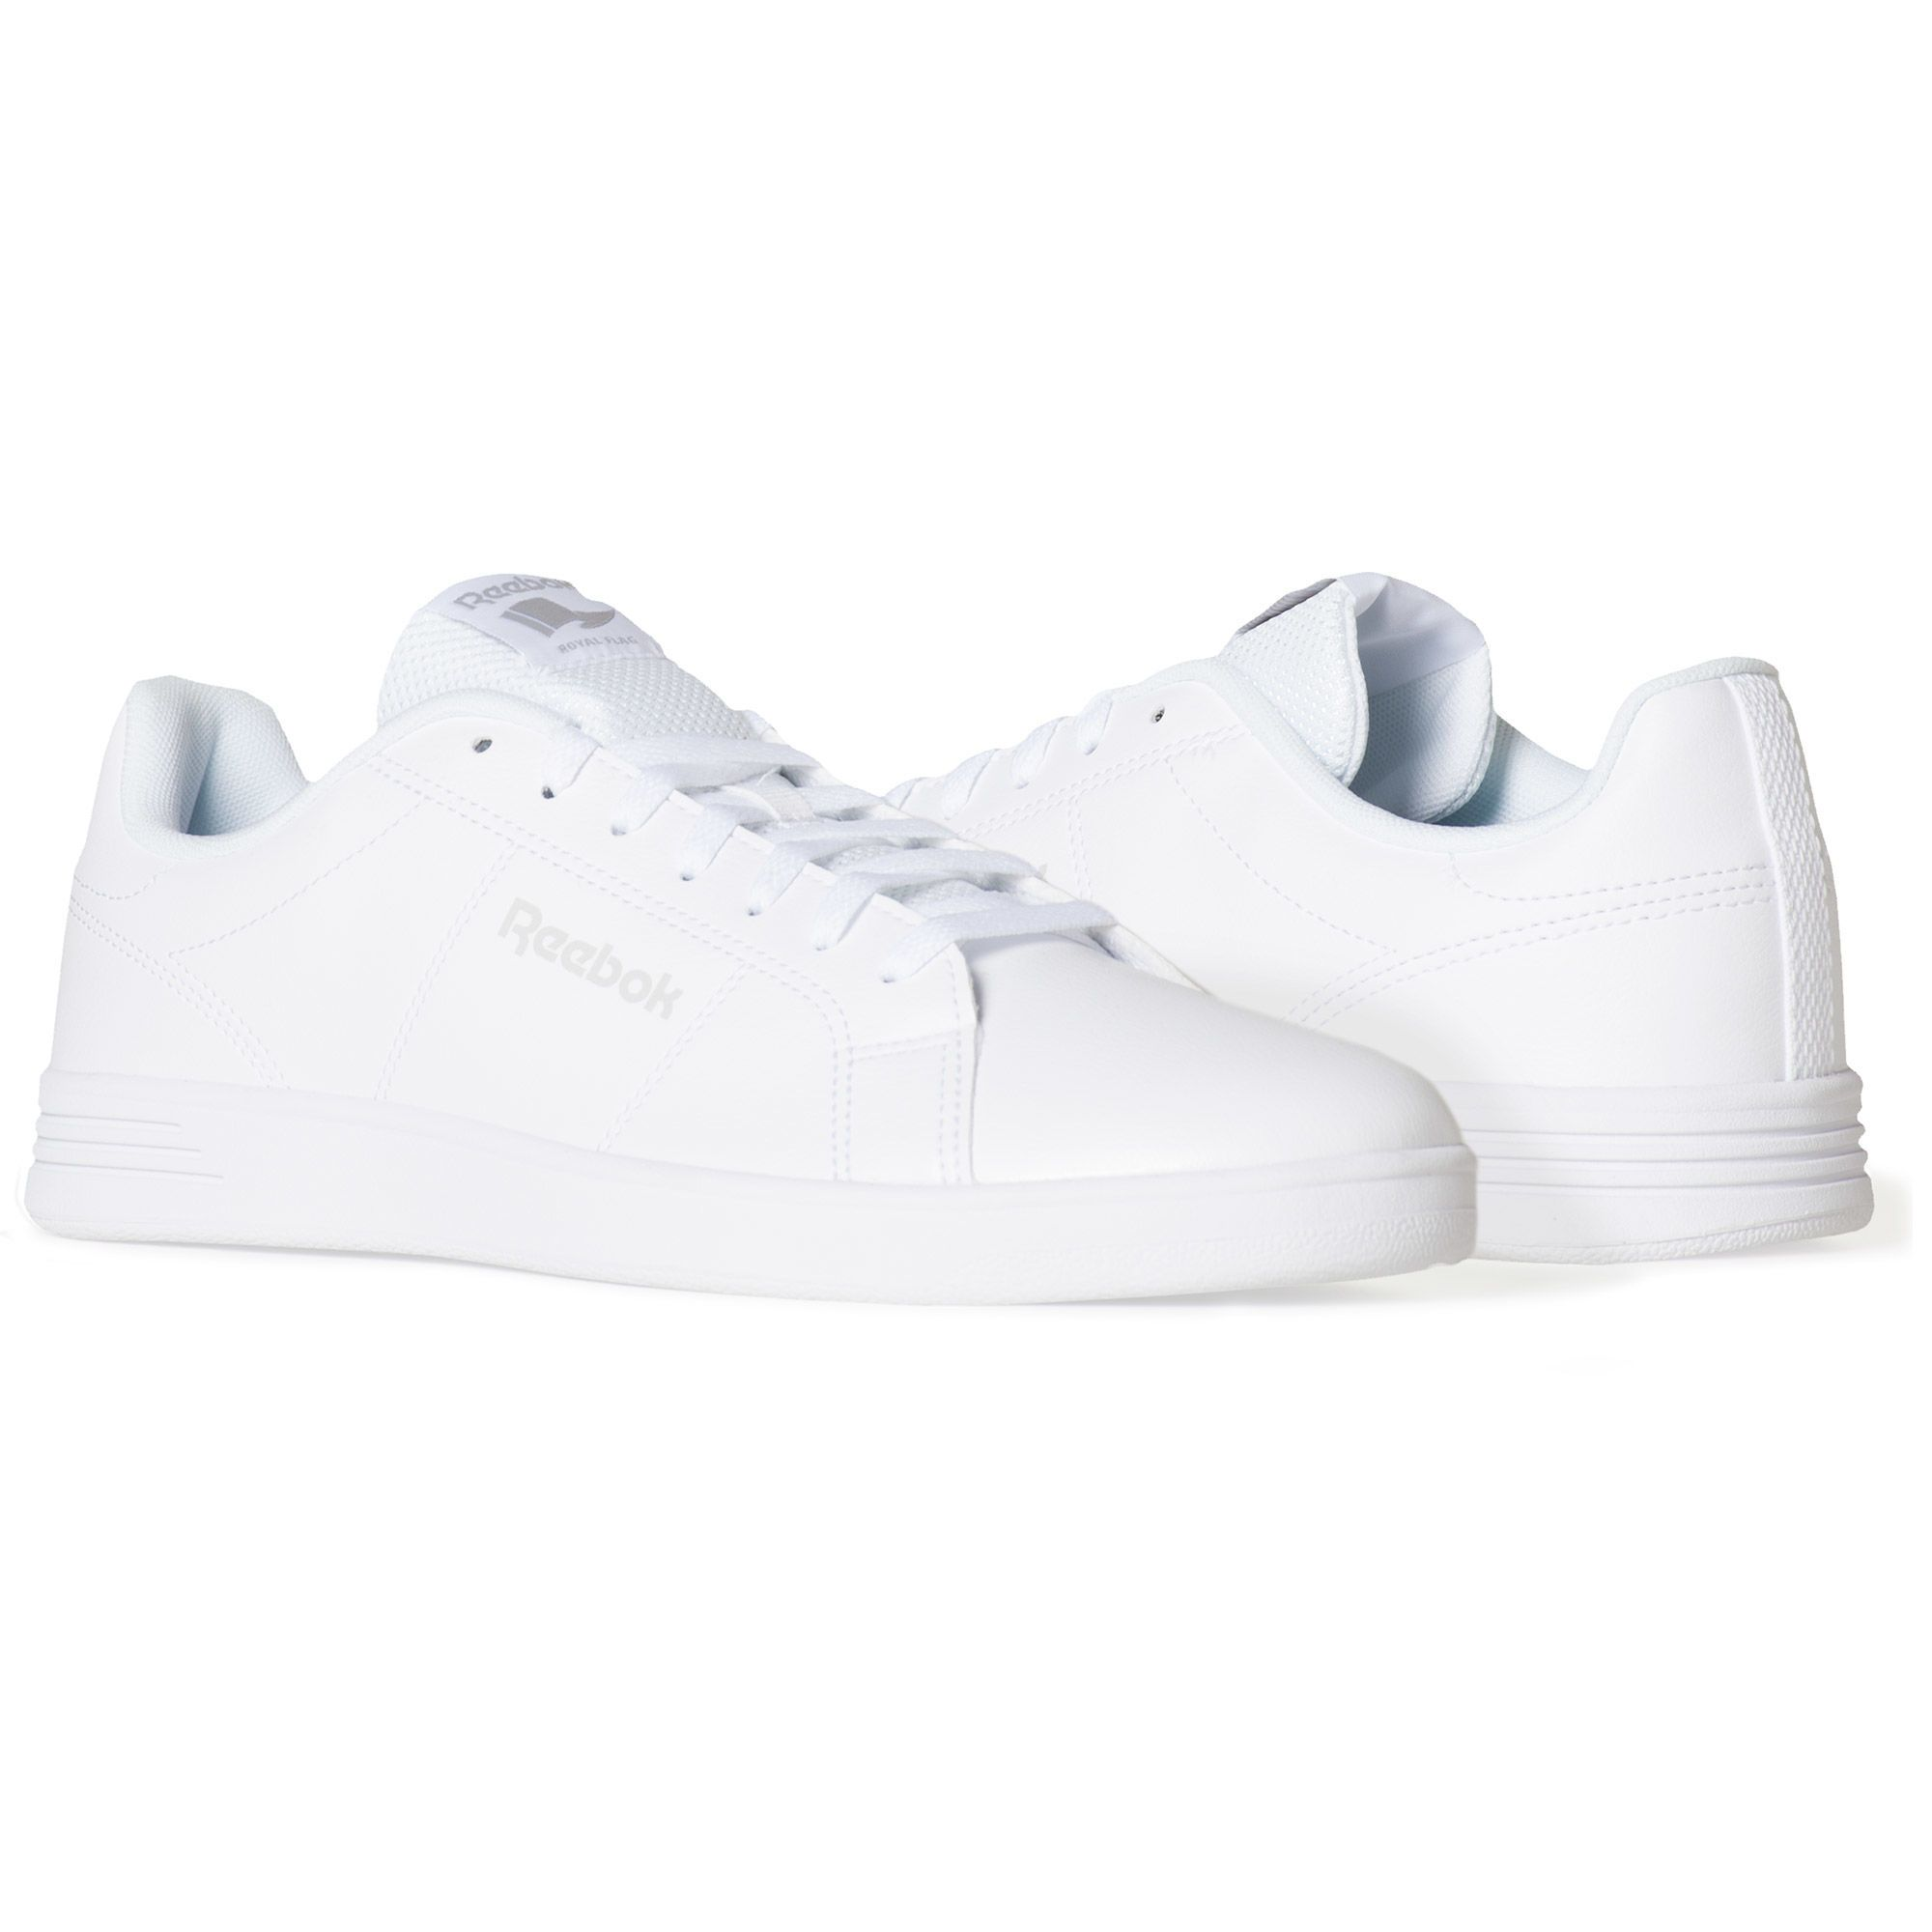 4132474dcb Reebok - Tenis Reebok Royal Rally